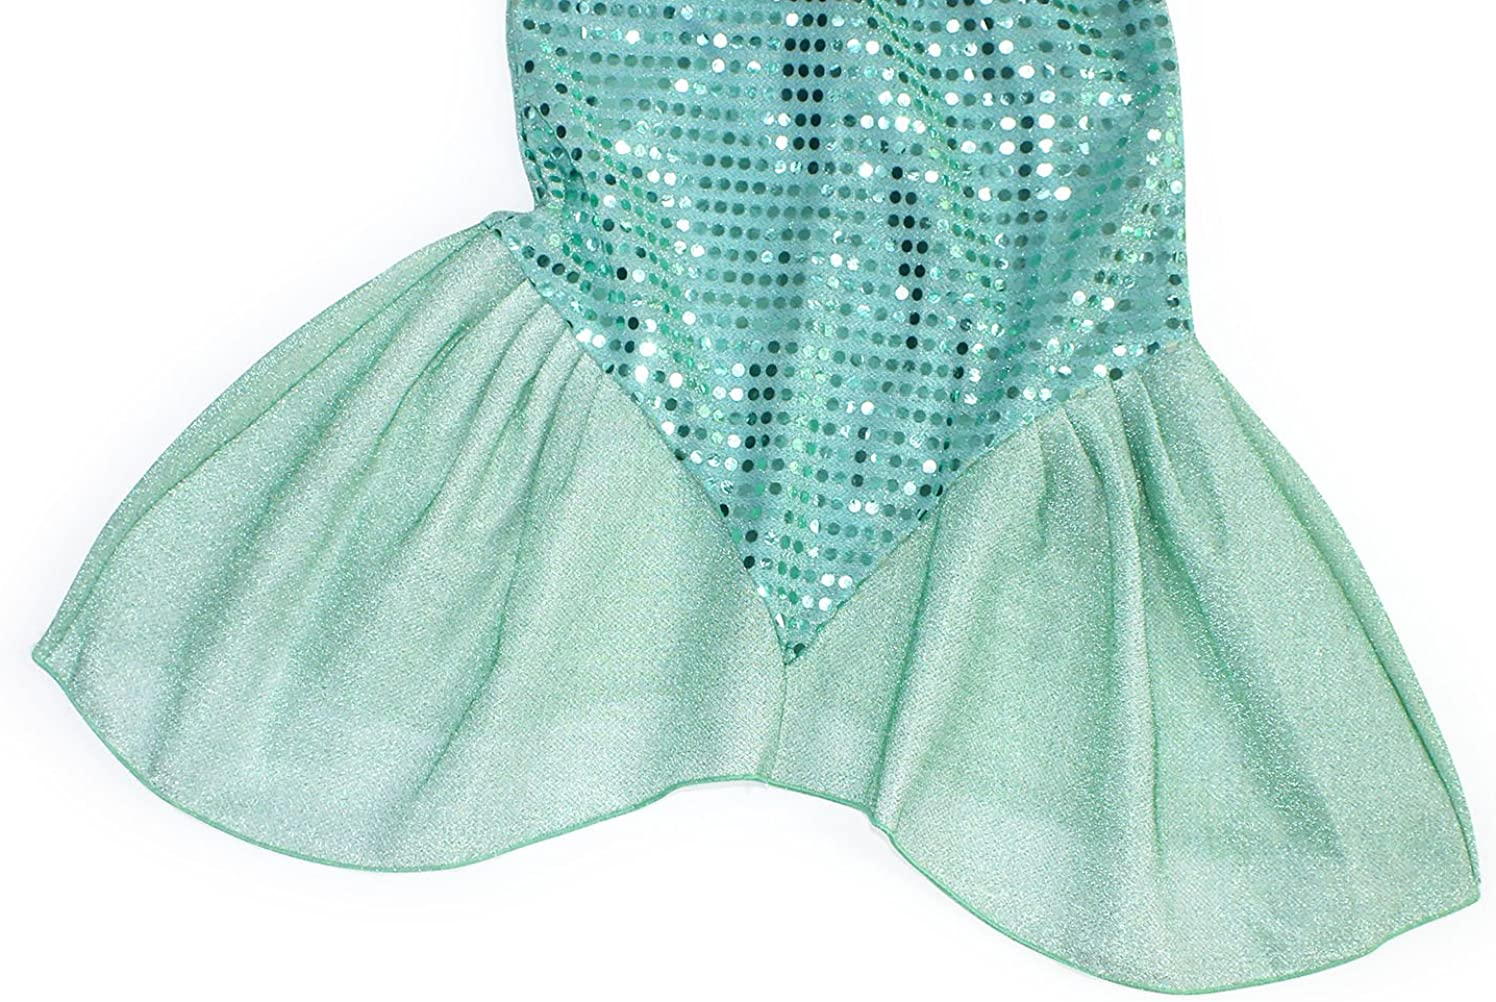 AmzBarley Little Mermaid Costume Ariel Dress up Girls Kids Fish Tail Party Fancy Dresses Halloween Costumes Clothes Holiday Birthday Outfit